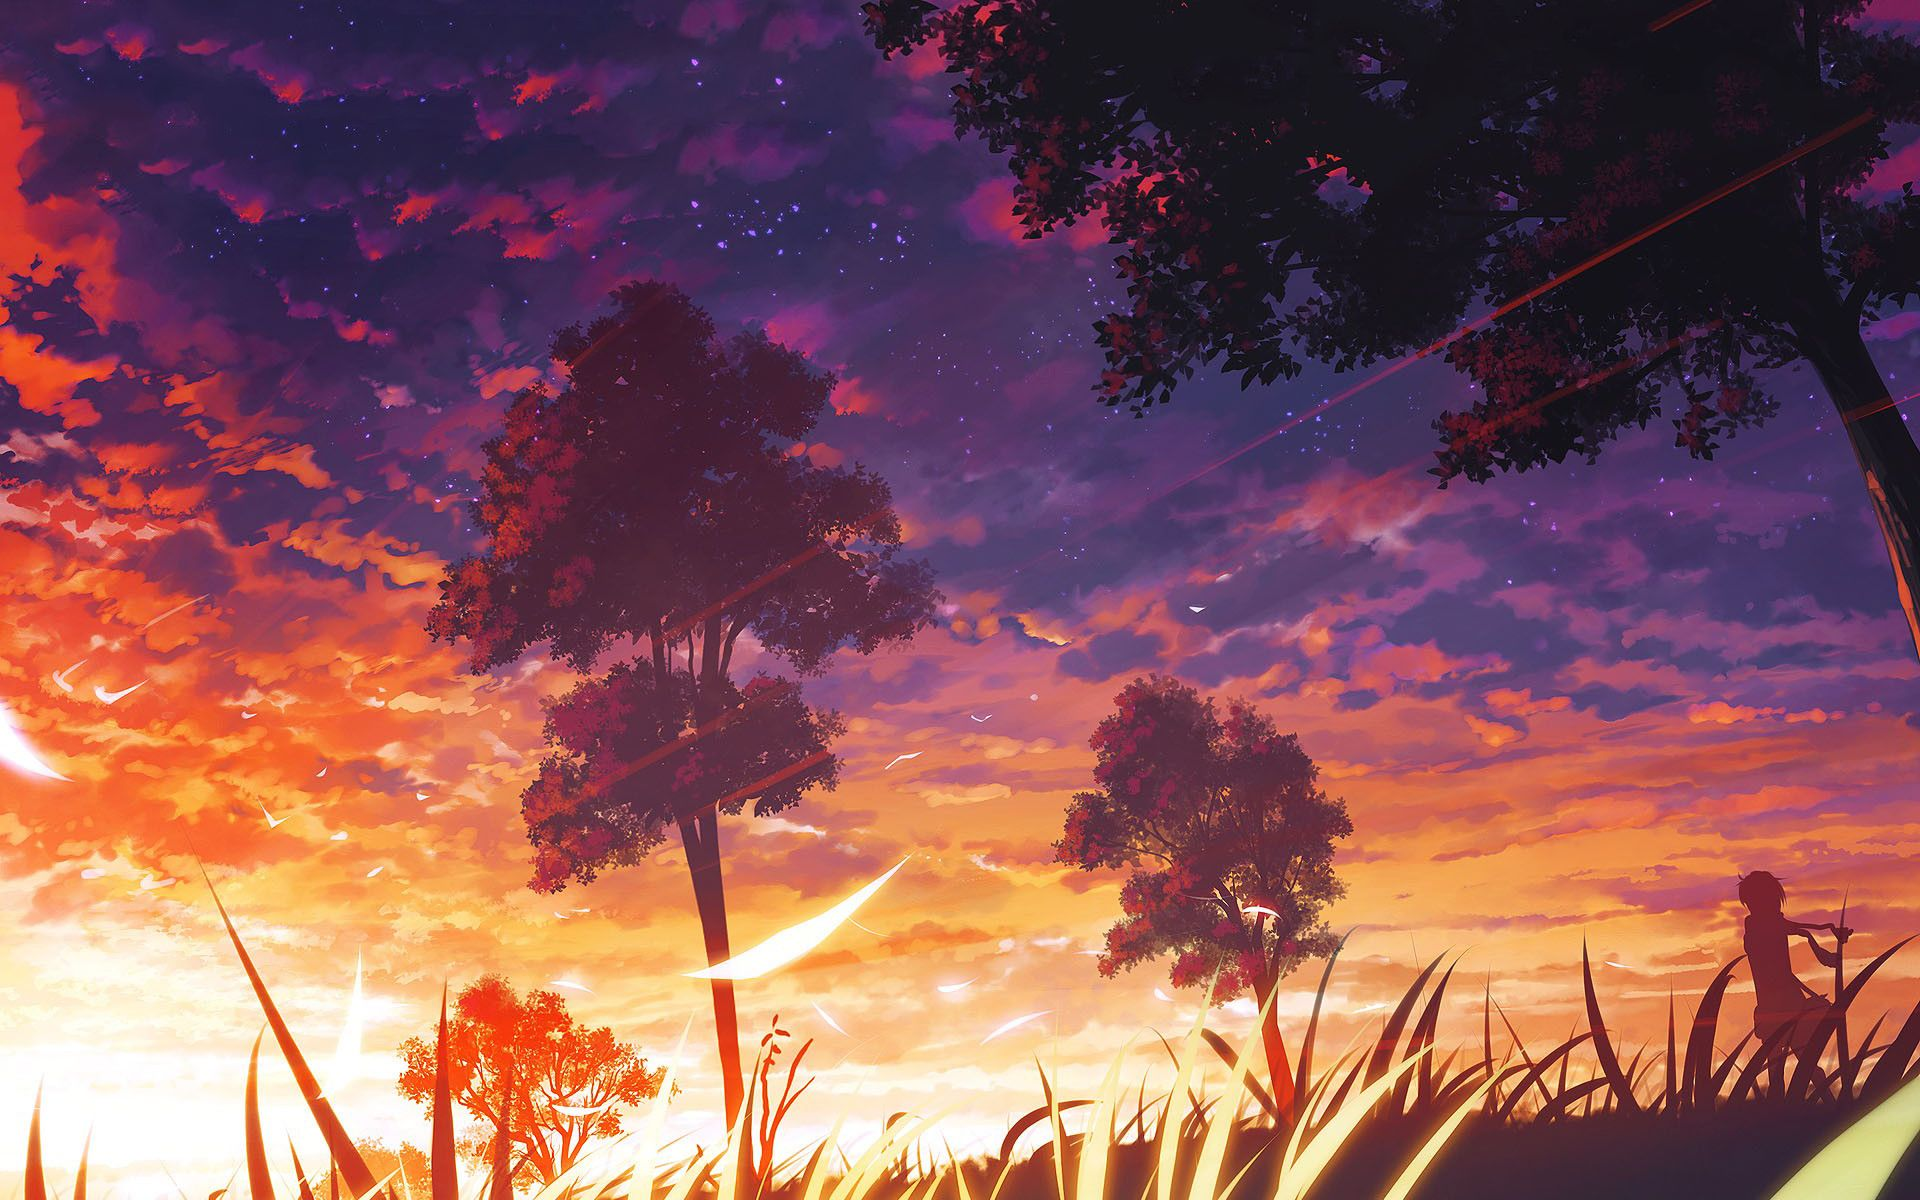 Anime Summer Sunset images Summer Background 3